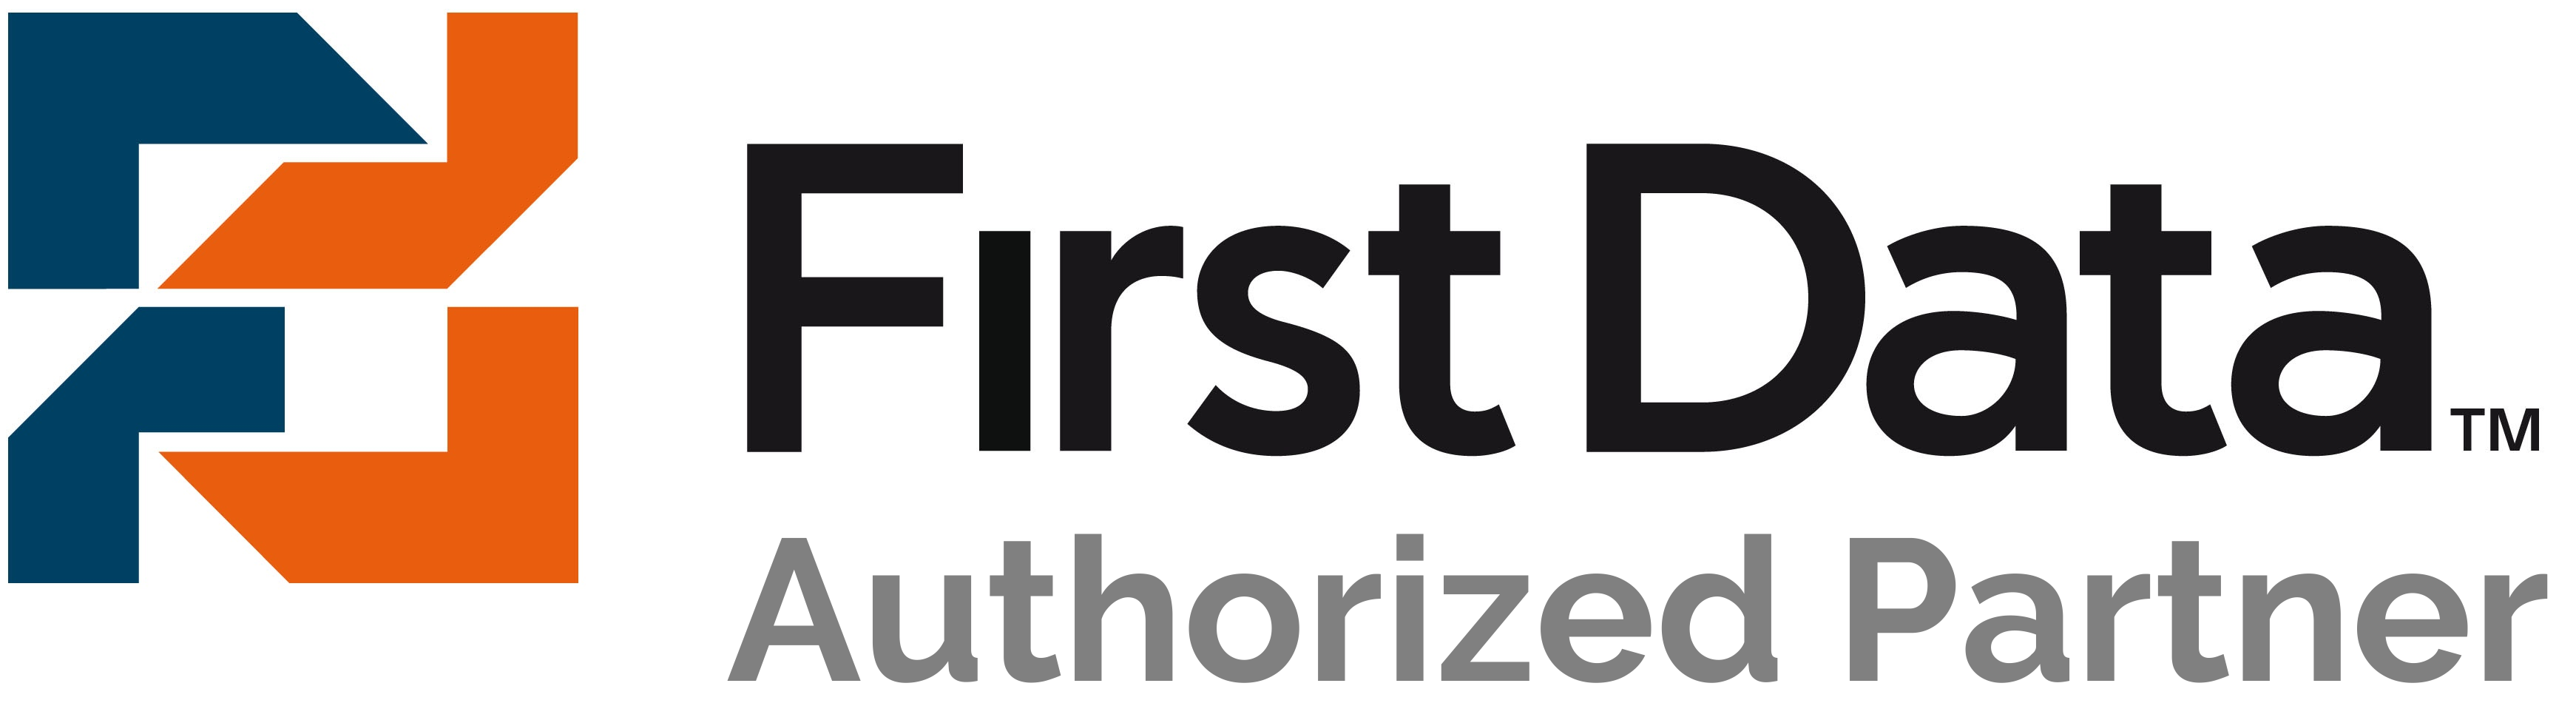 Zairmail site is an Authorized Partner with First Data